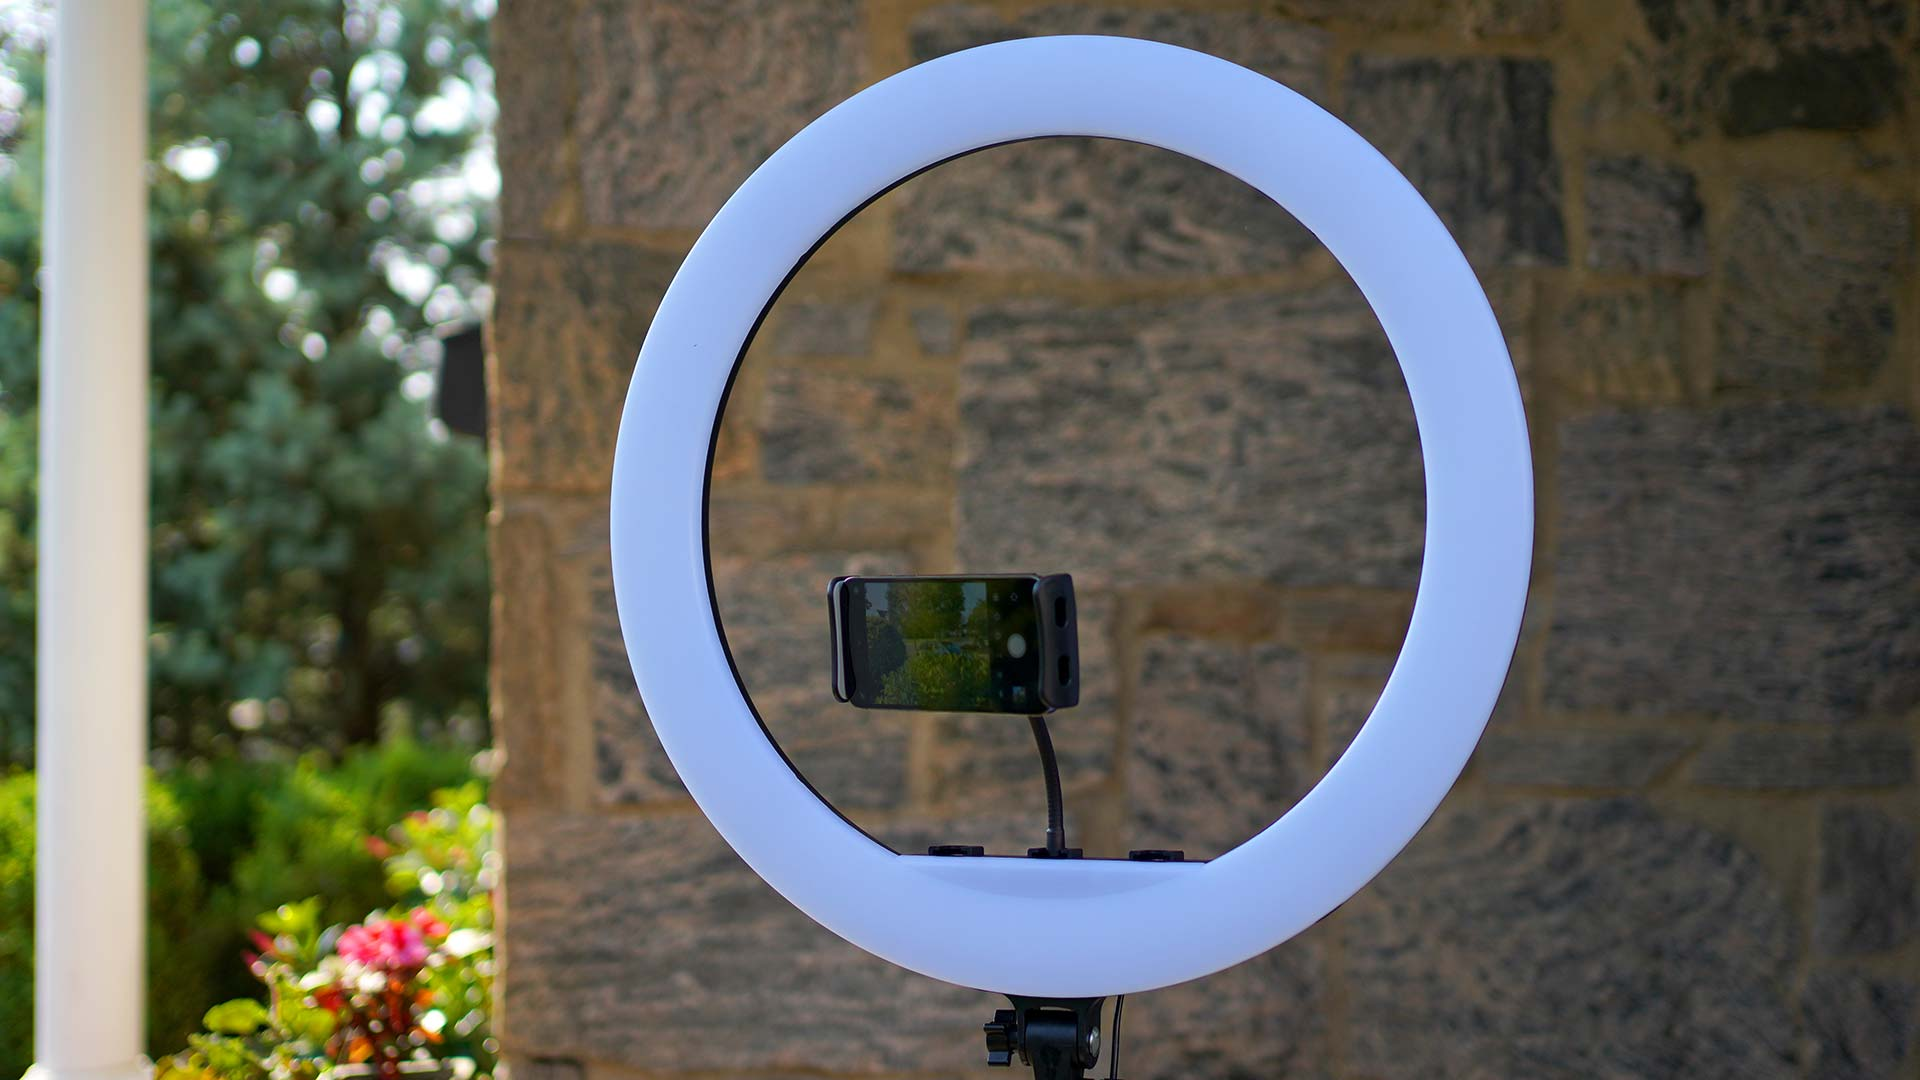 Inkletech 21-inch ring light in front of a wall